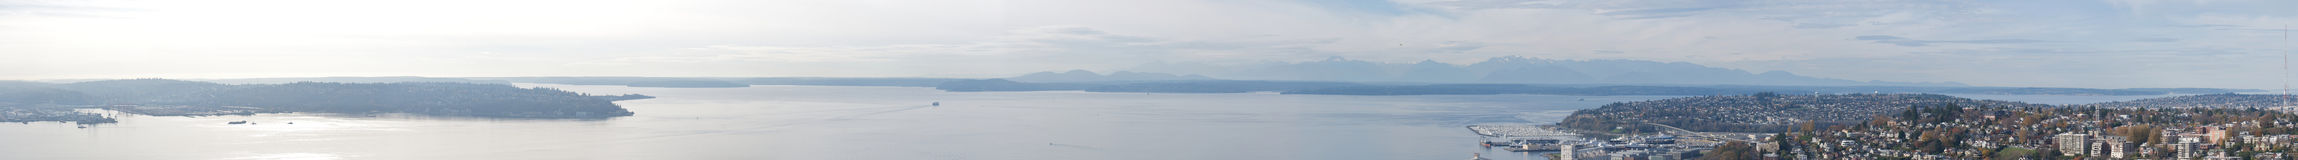 Puget Sound Panorama Stock Image